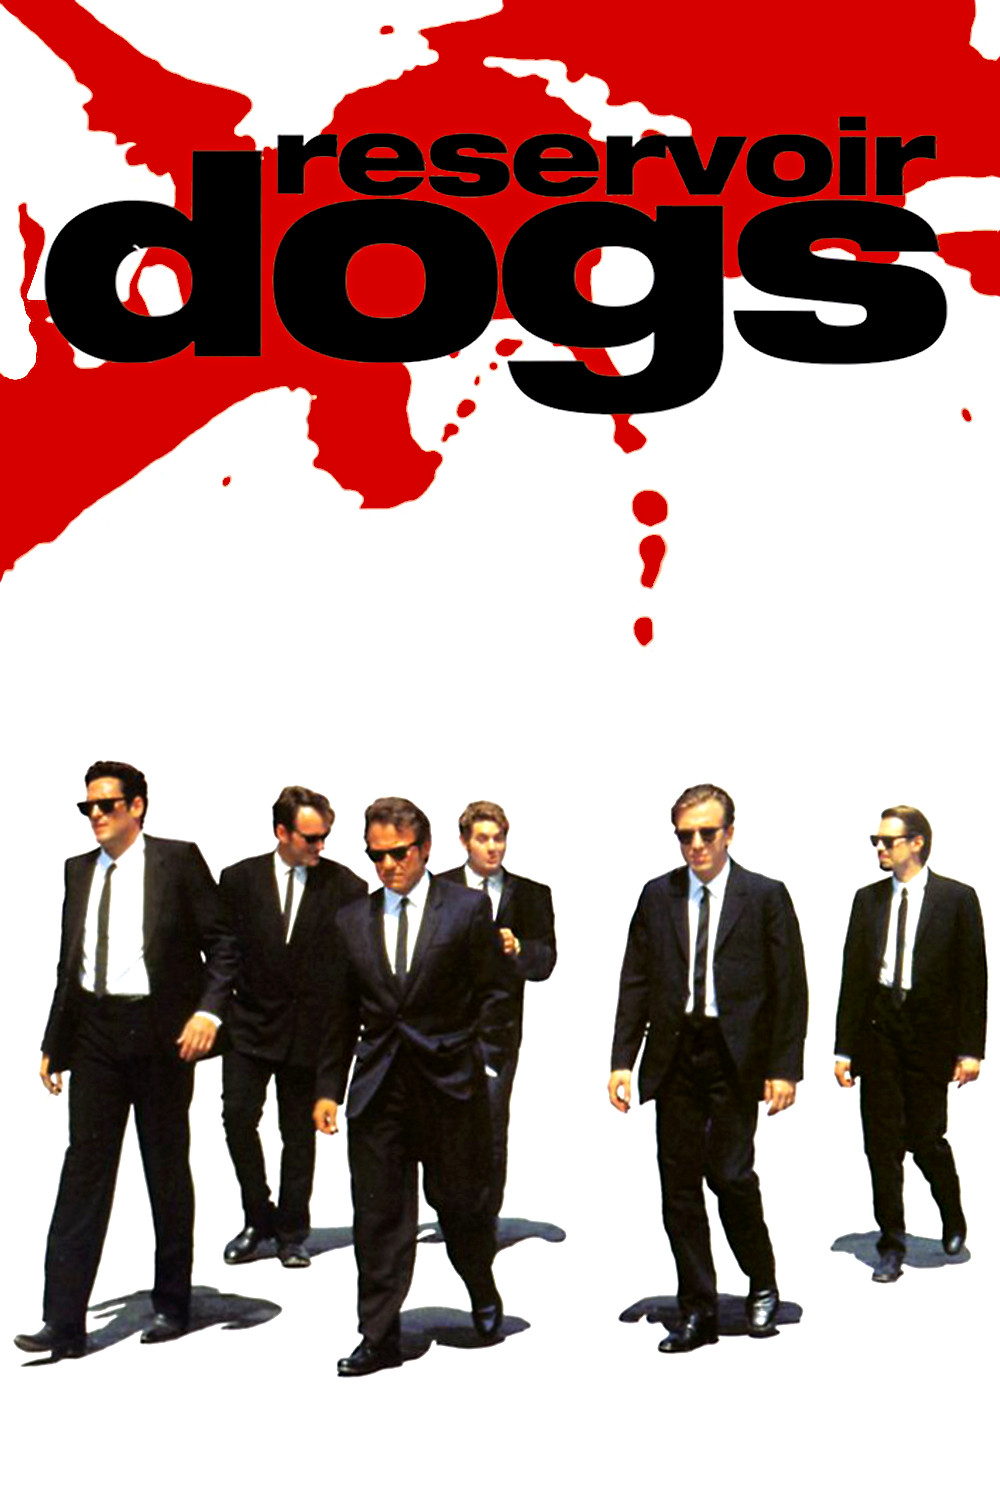 RESERVOIR DOGS FILM SCREENING